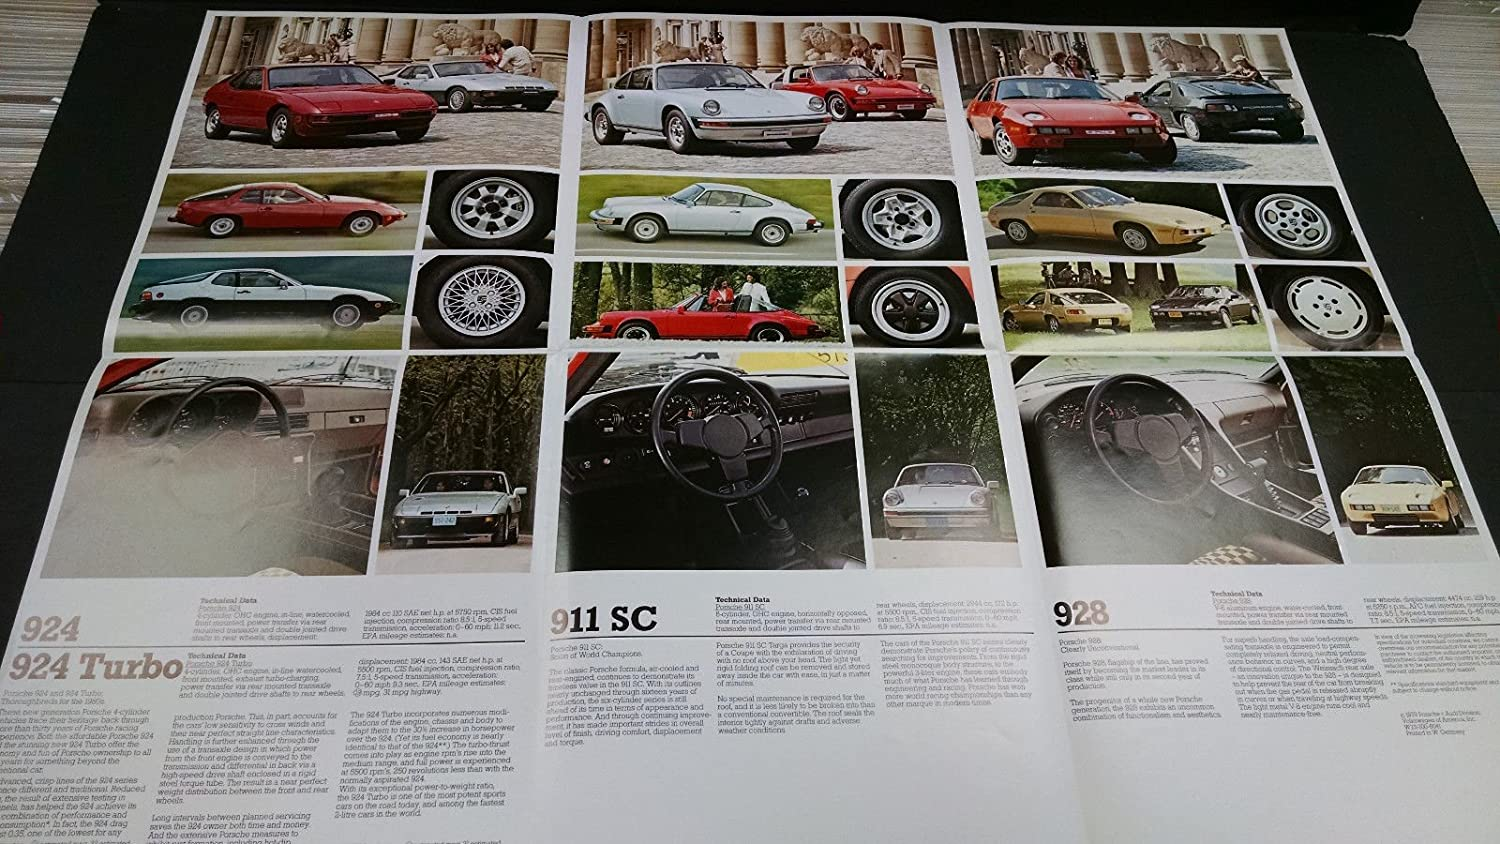 1979 Porsche 911 SC 928 924 Turbo sales brochure fold out poster MBX8 at Amazons Entertainment Collectibles Store